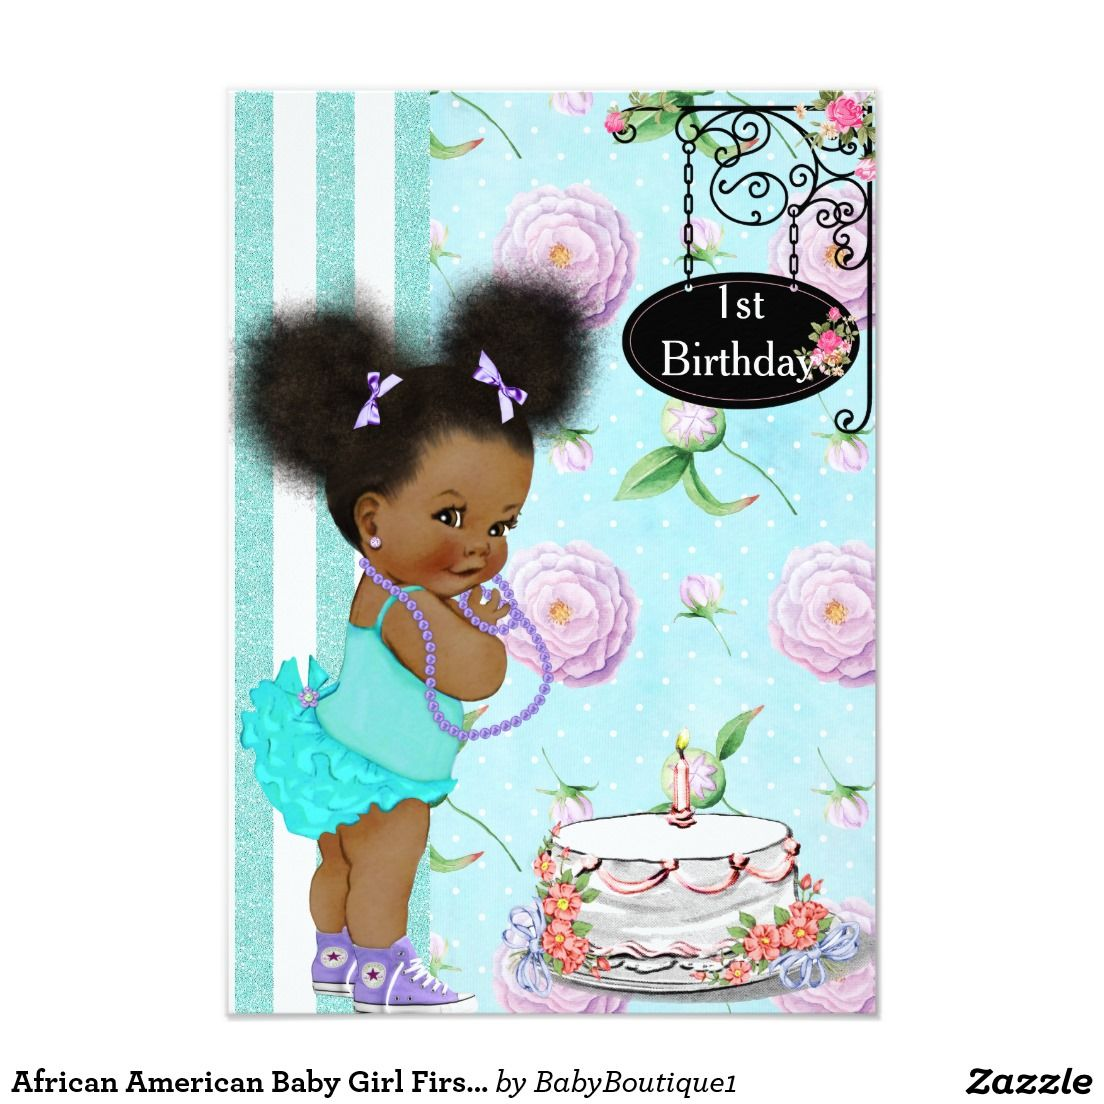 Cute Birthday Cake Wishes For Baby One Year Old Wishes For Baby